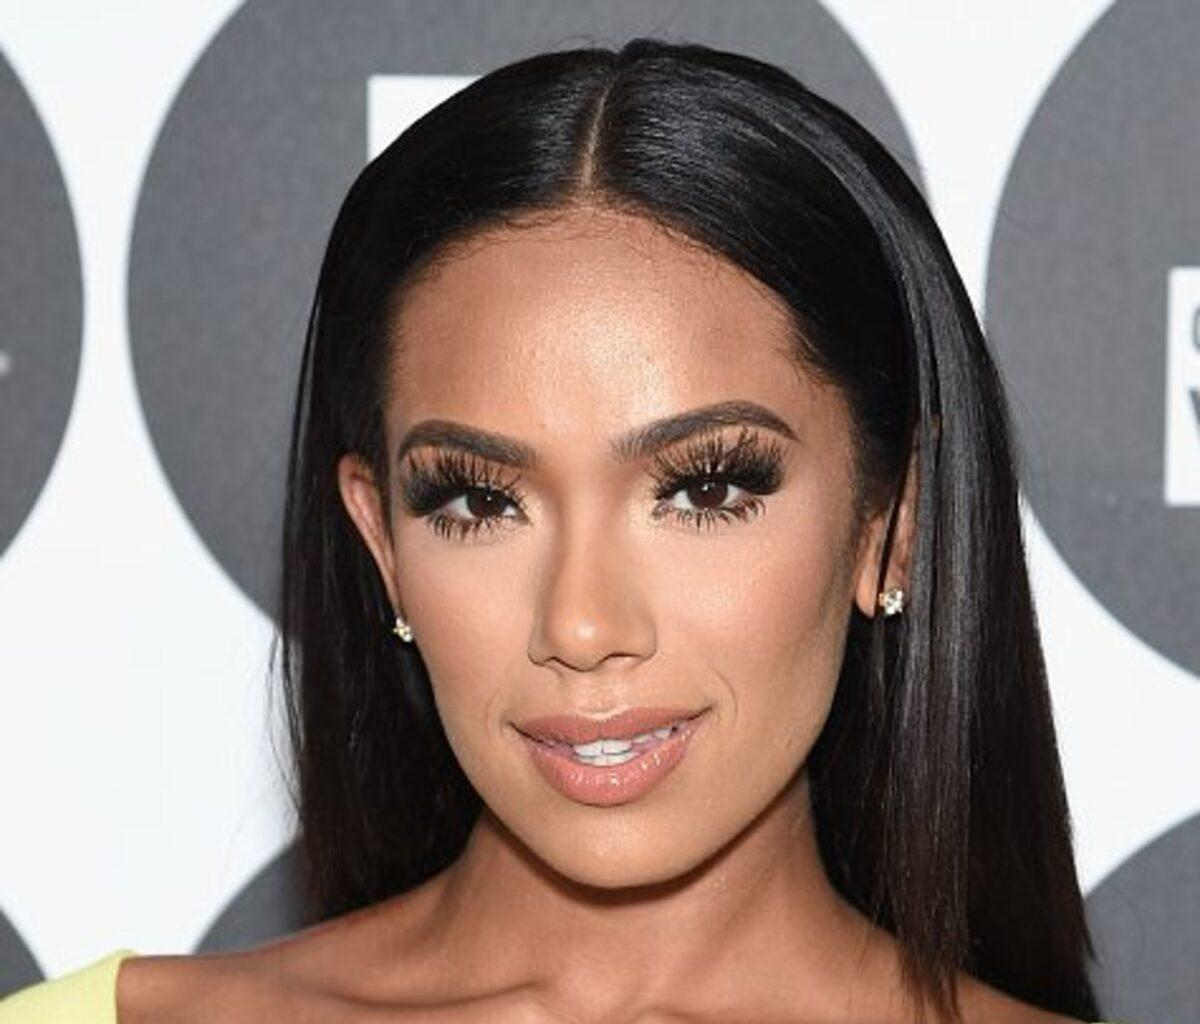 Erica Mena Asks For Healing And Guidance - See Fans Supporting Her